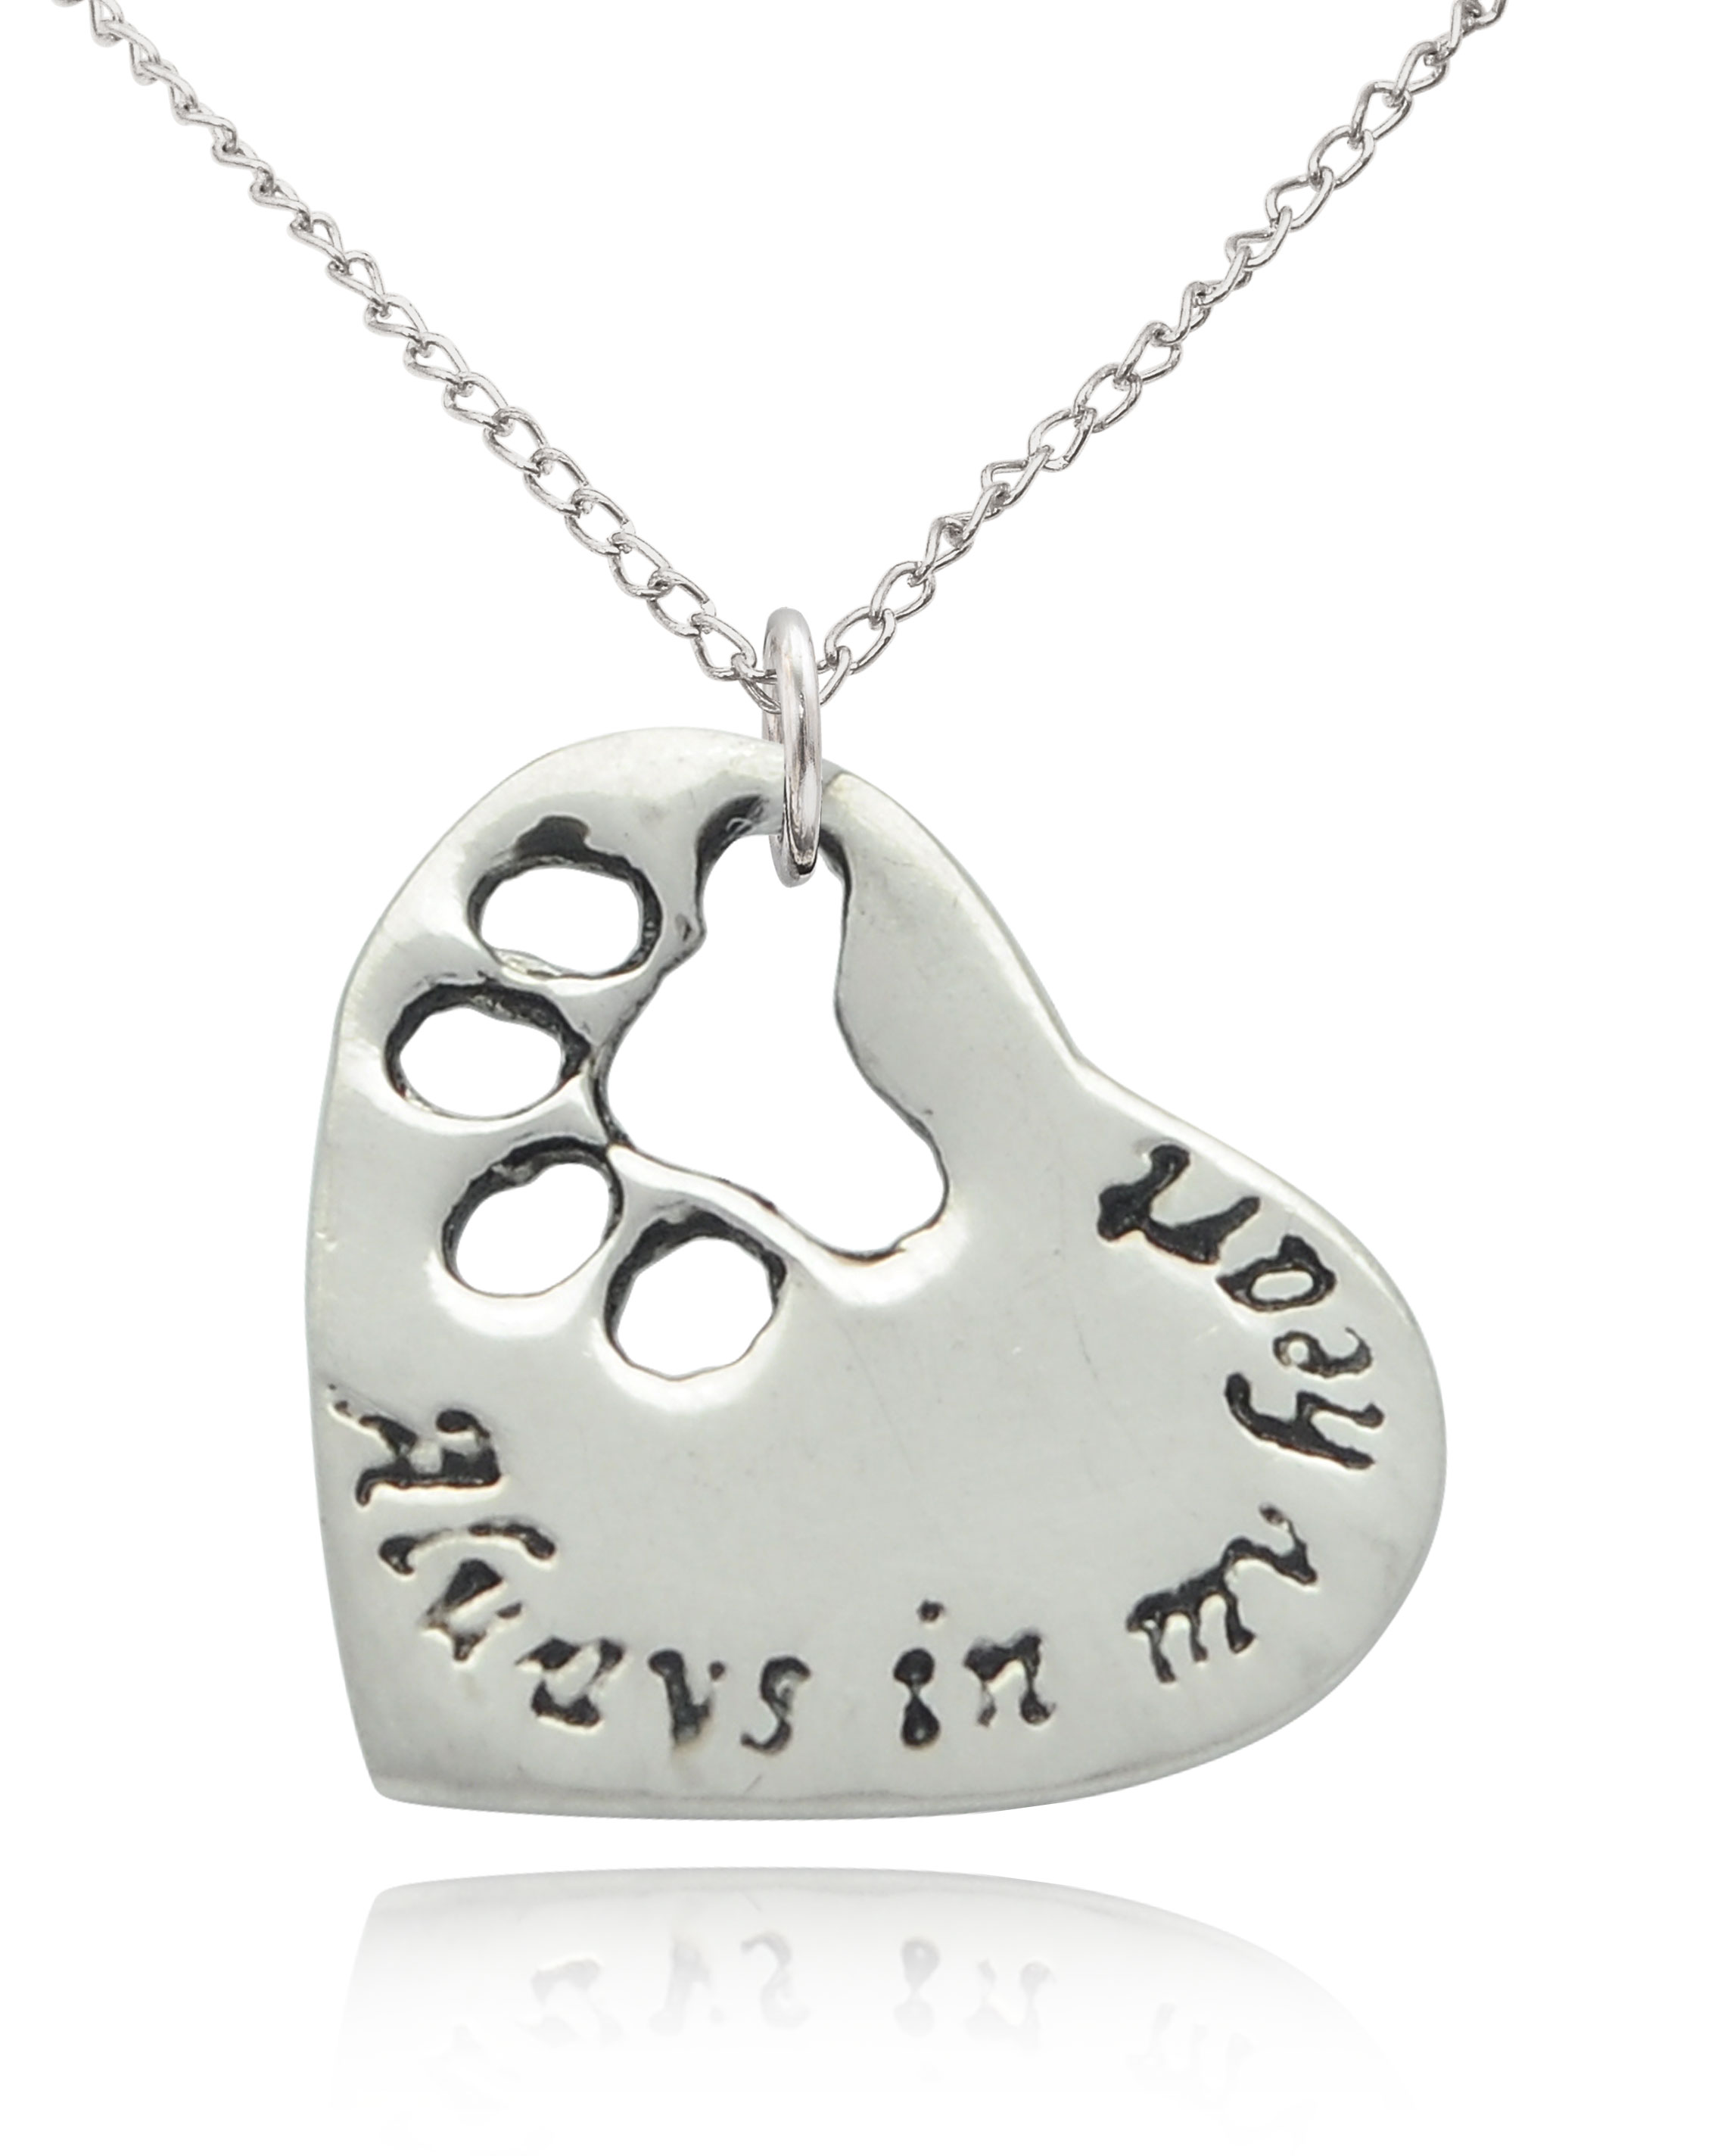 Silver Paw Cavachons: Dog Paw Silver Pewter Charm Necklace Pendant Jewelry